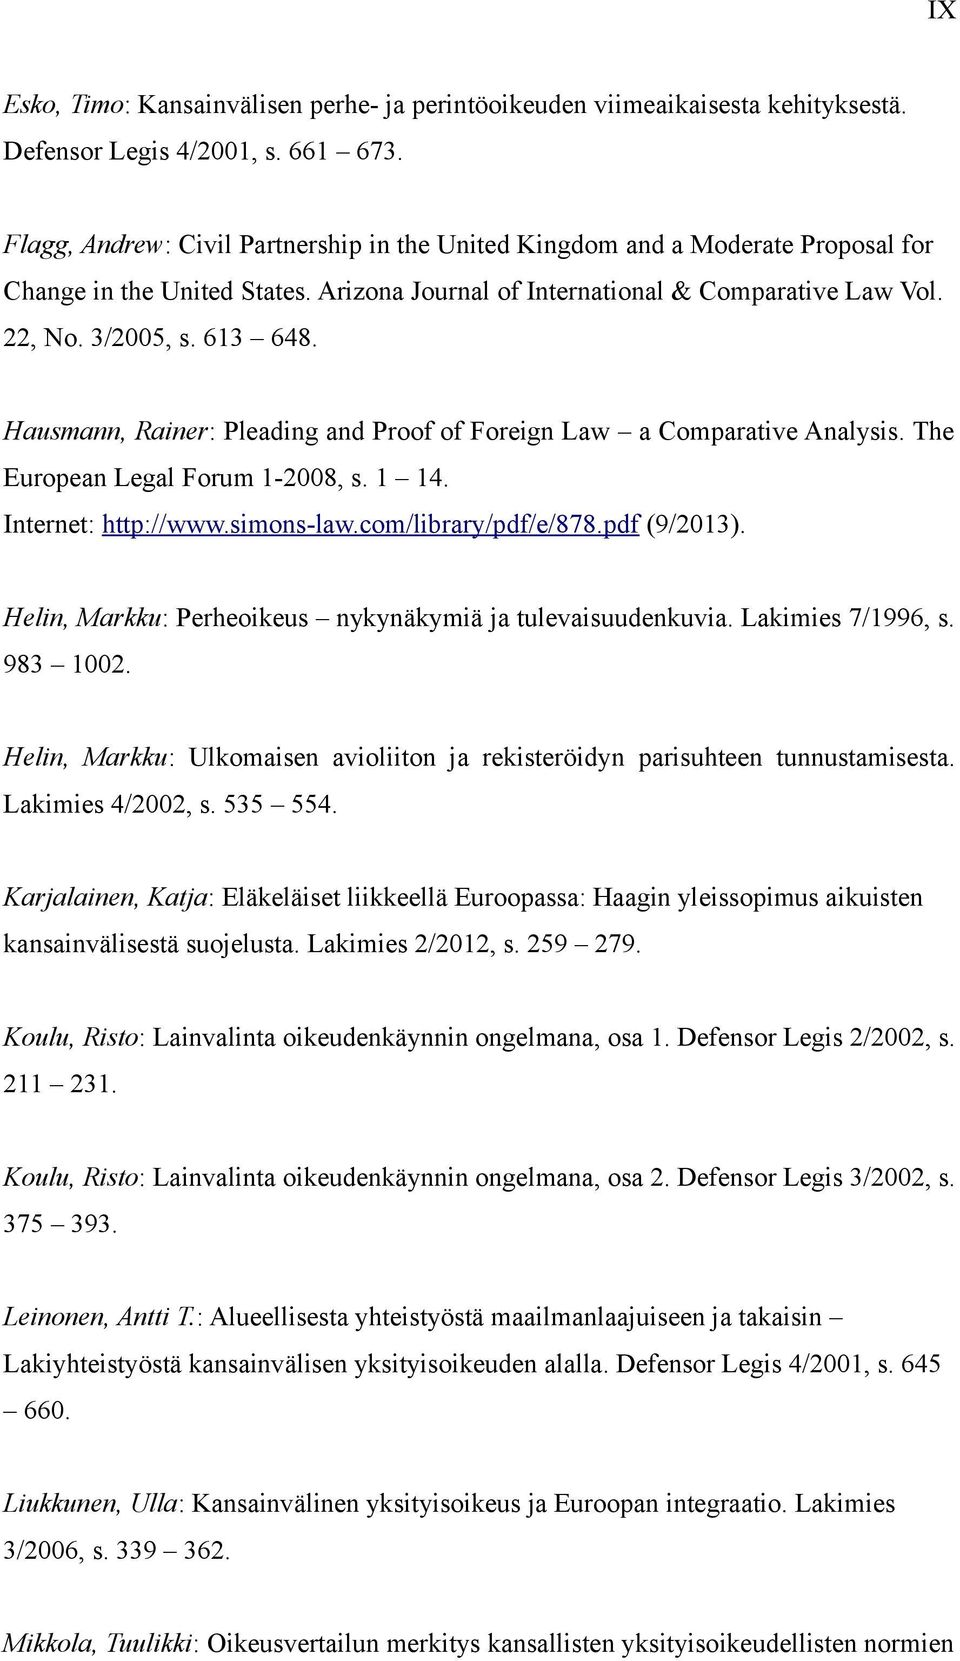 Hausmann, Rainer: Pleading and Proof of Foreign Law a Comparative Analysis. The European Legal Forum 1-2008, s. 1 14. Internet: http://www.simons-law.com/library/pdf/e/878.pdf (9/2013).